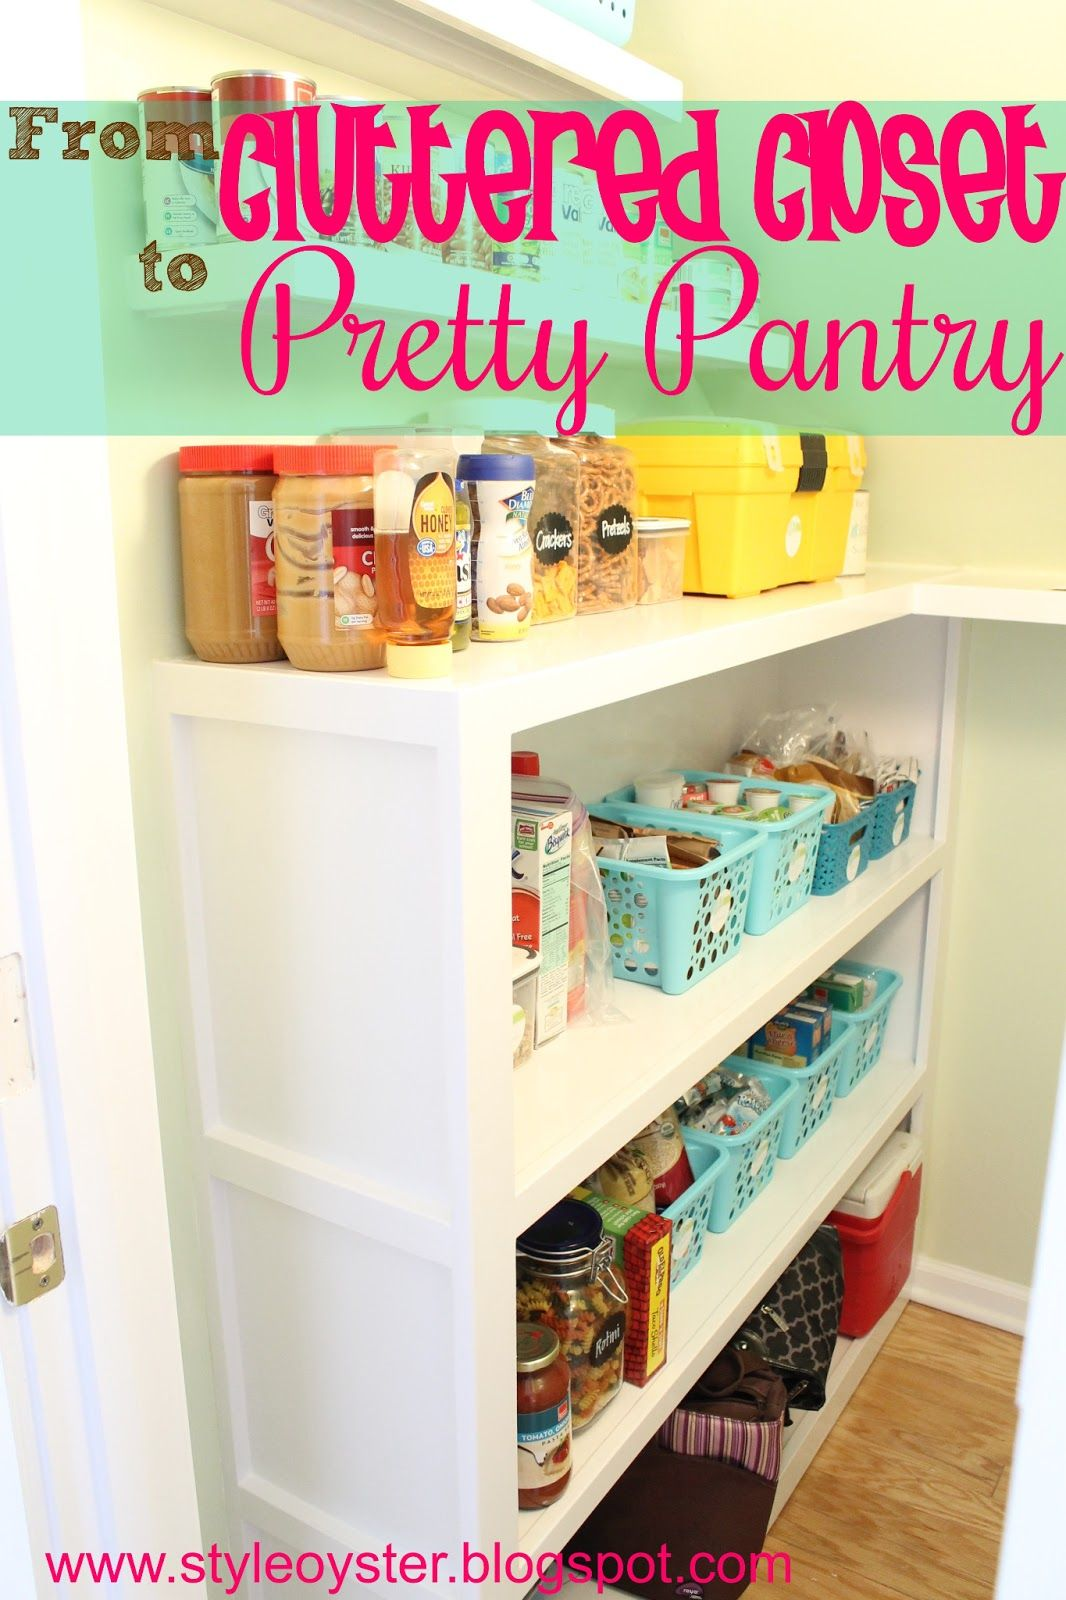 Style oyster closet turned pretty pantry cute dollar store